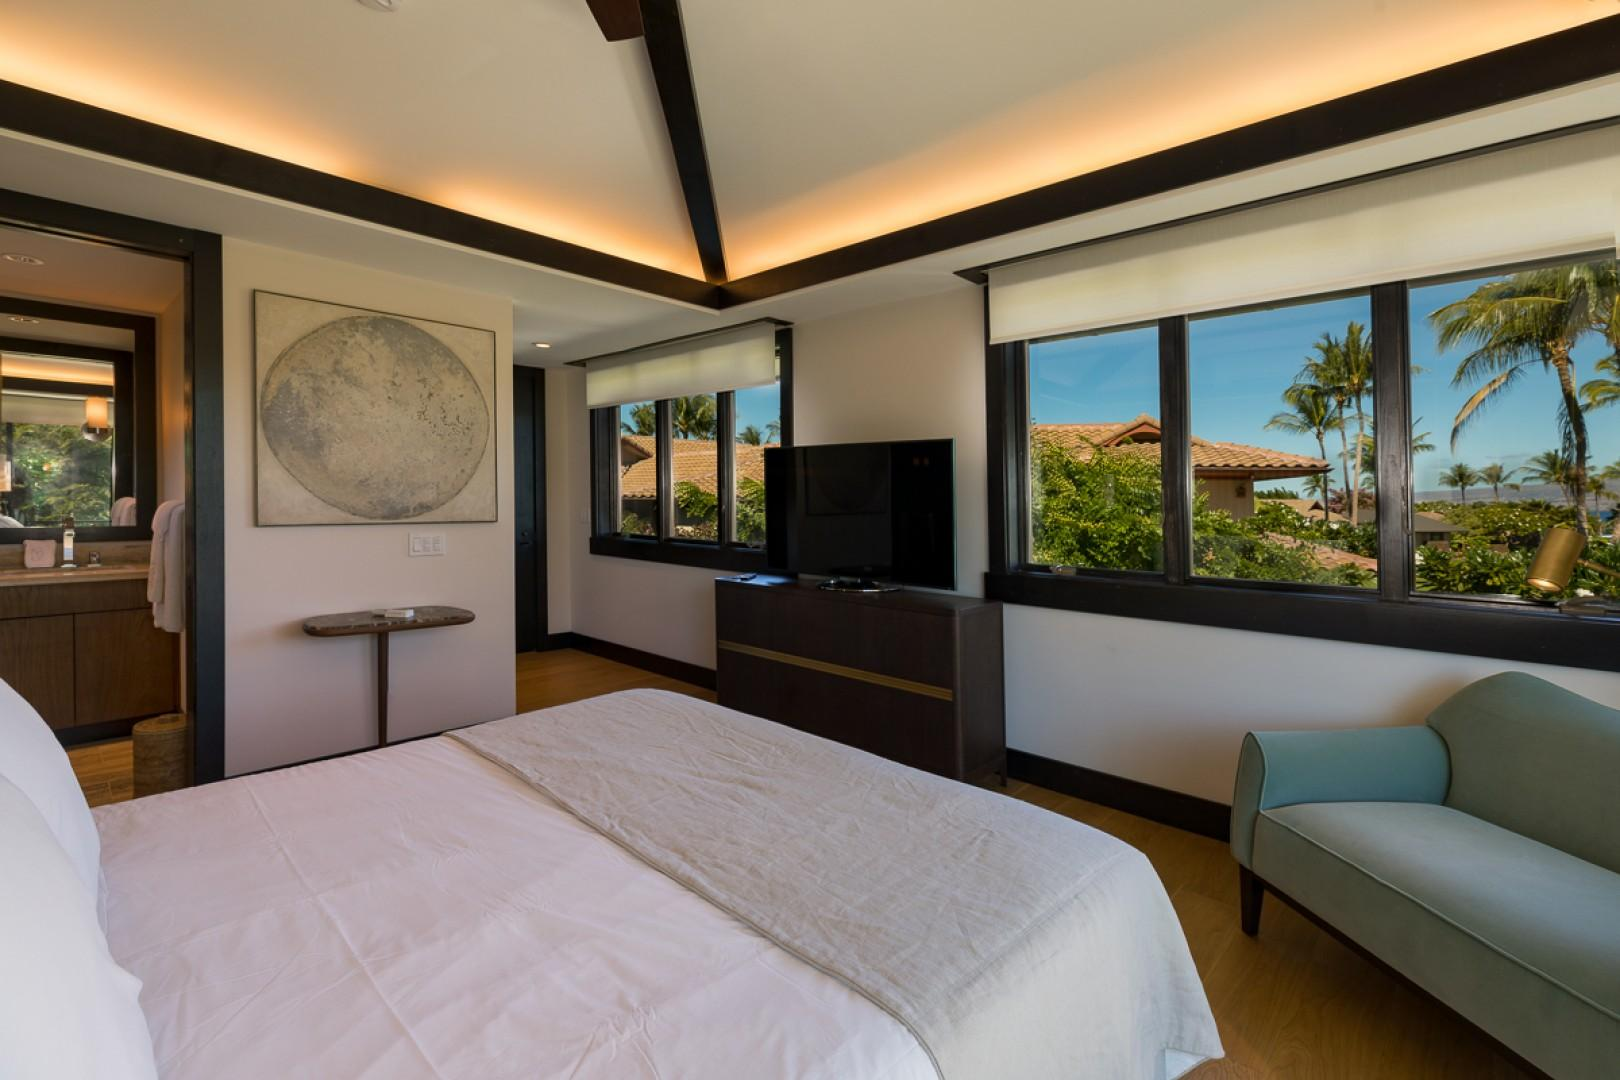 Sitting areas and televisions ensure guest comfort